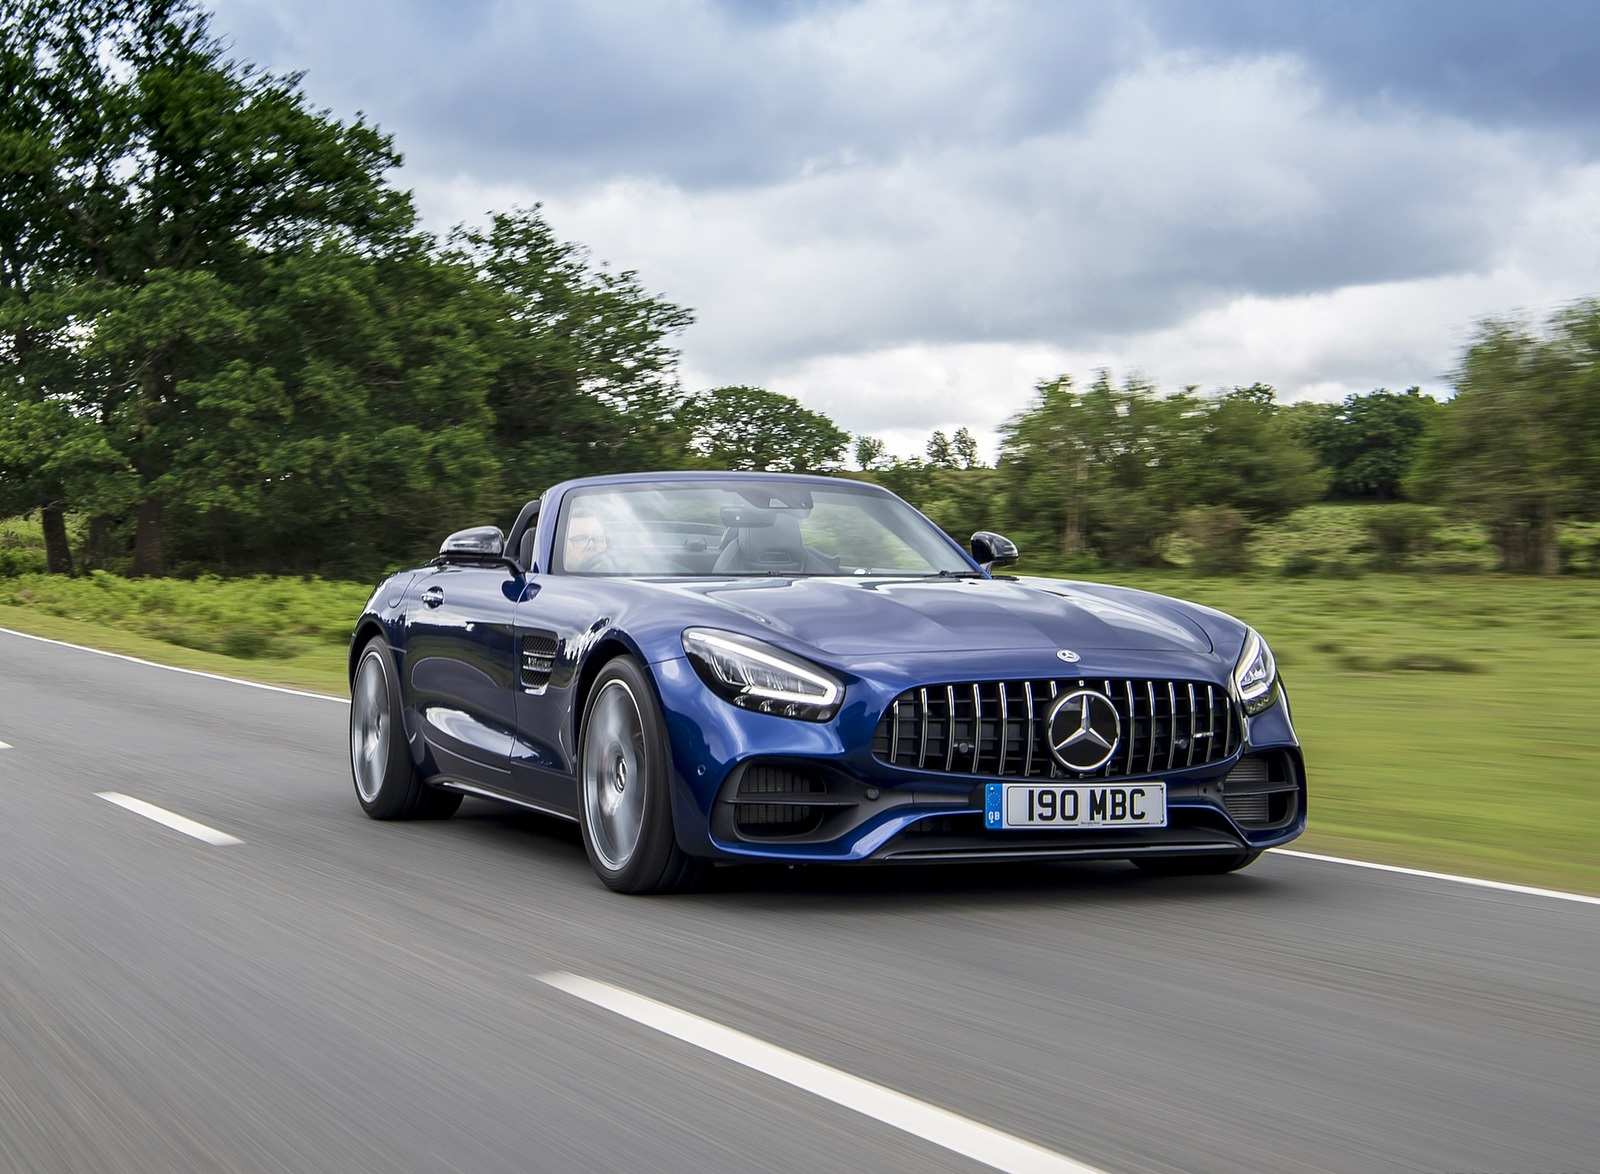 2020 Mercedes-AMG GT S Roadster (UK-Spec) Front Three-Quarter Wallpapers (4)